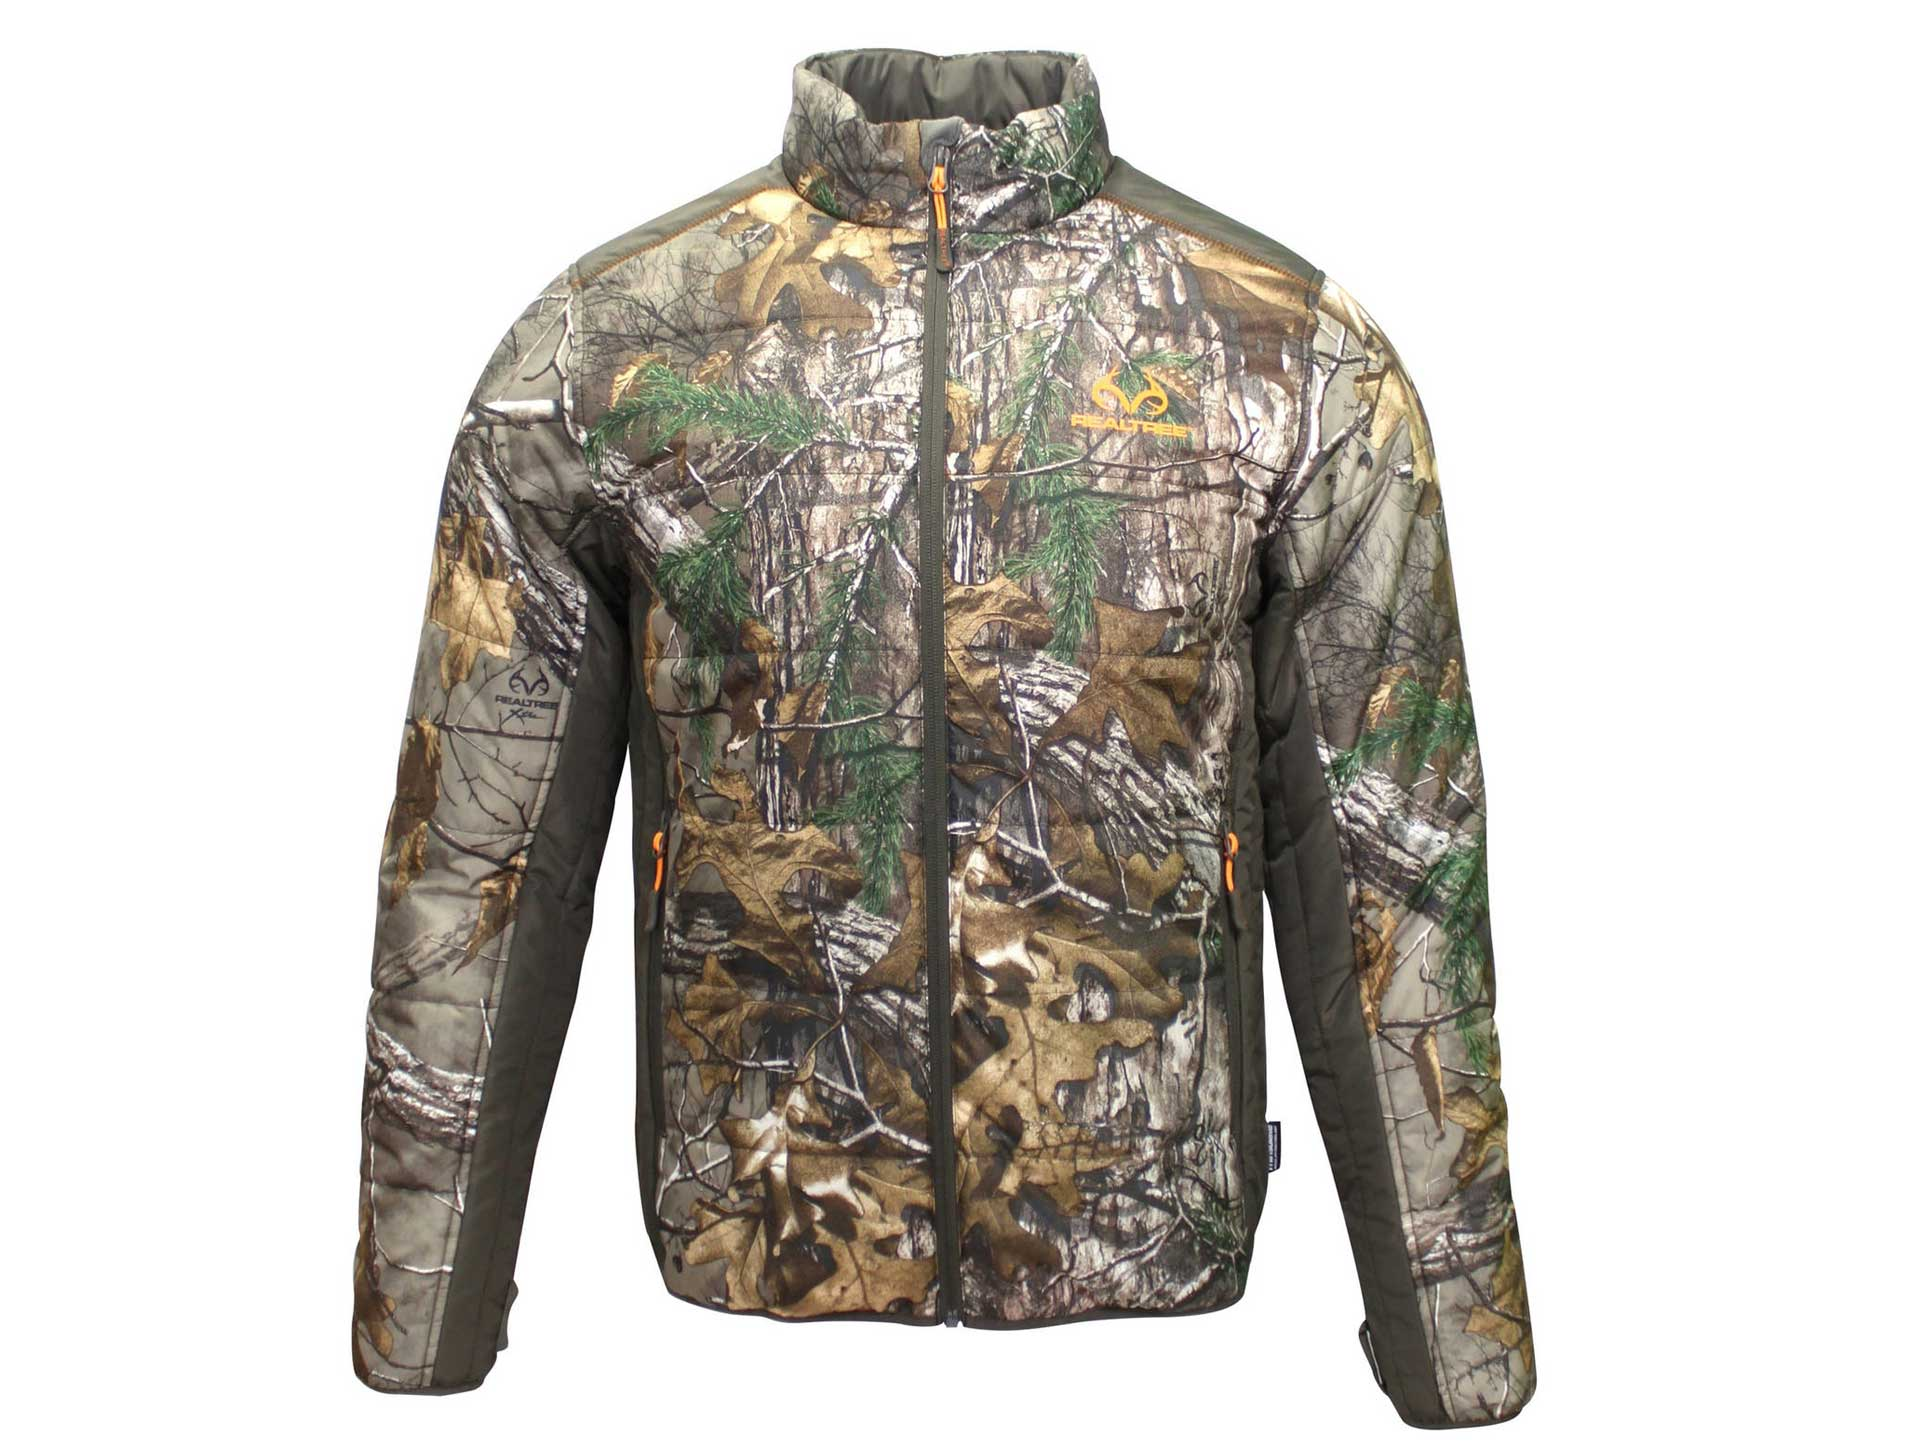 Mossy Oak insulated hunting jacket